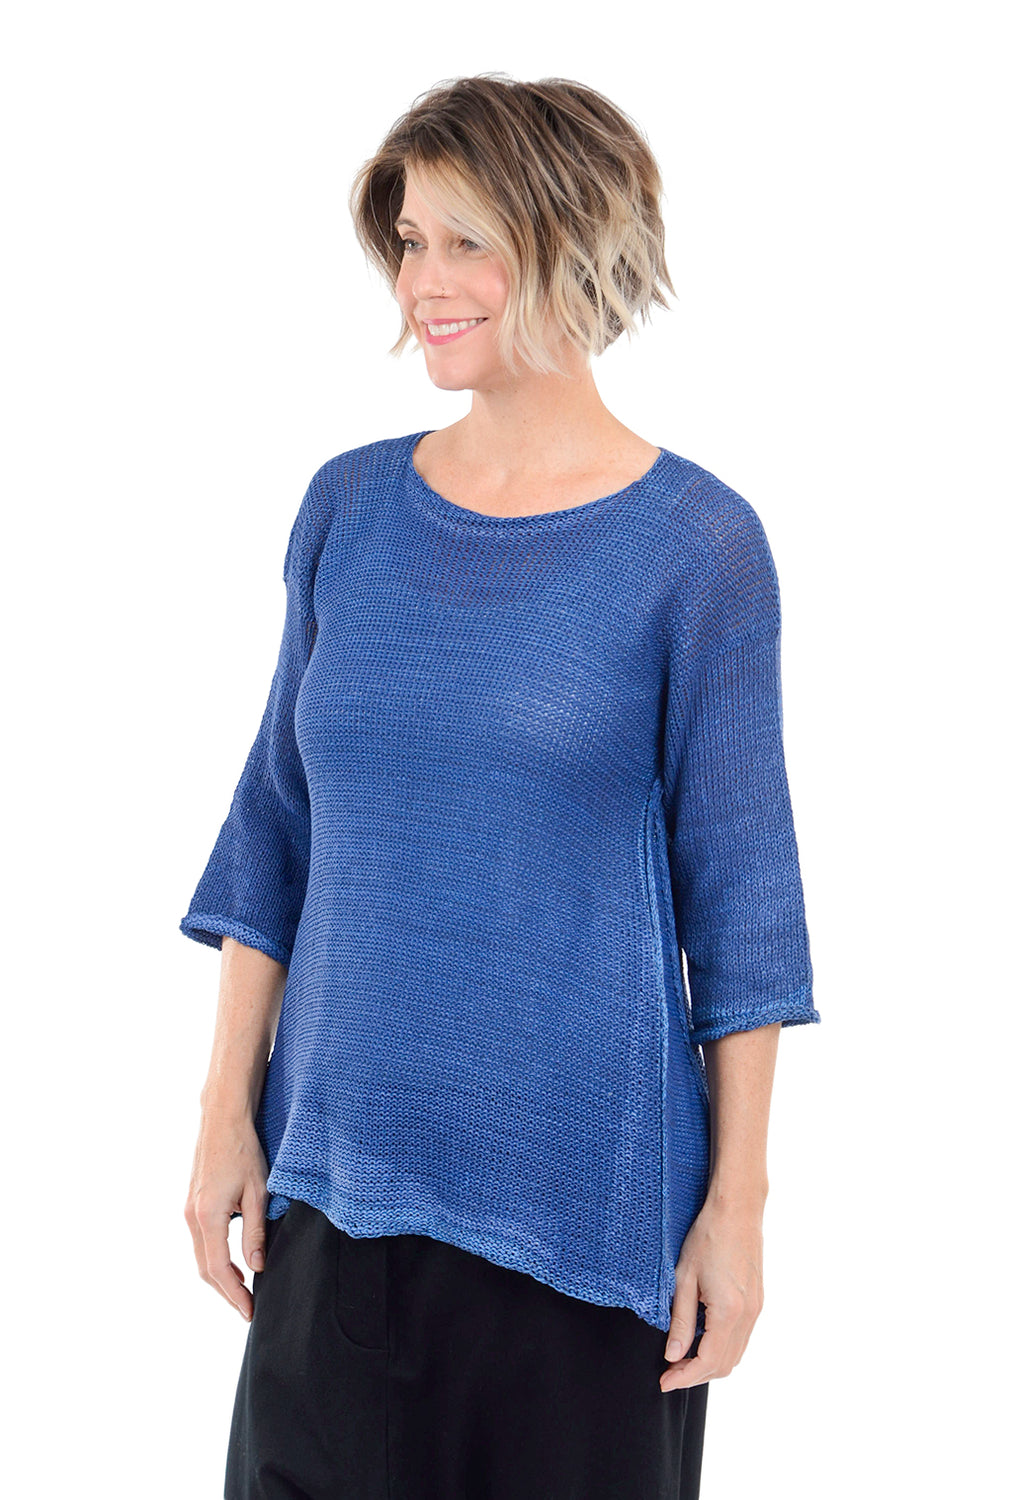 Skif International Painted Picnic Pullover, Cobalt Blue